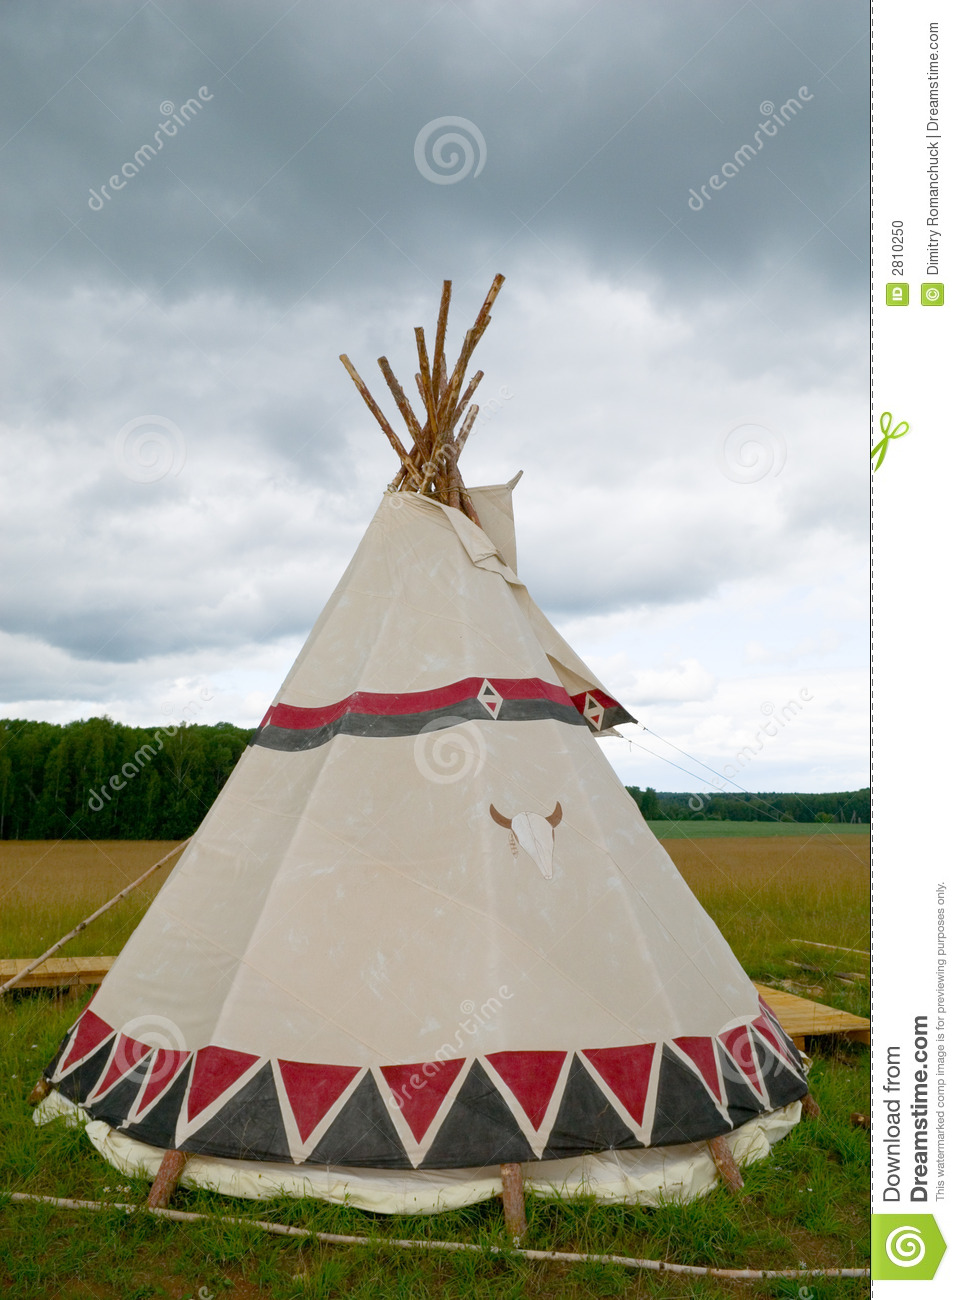 American Wigwam Stock Photo - Image: 2810250